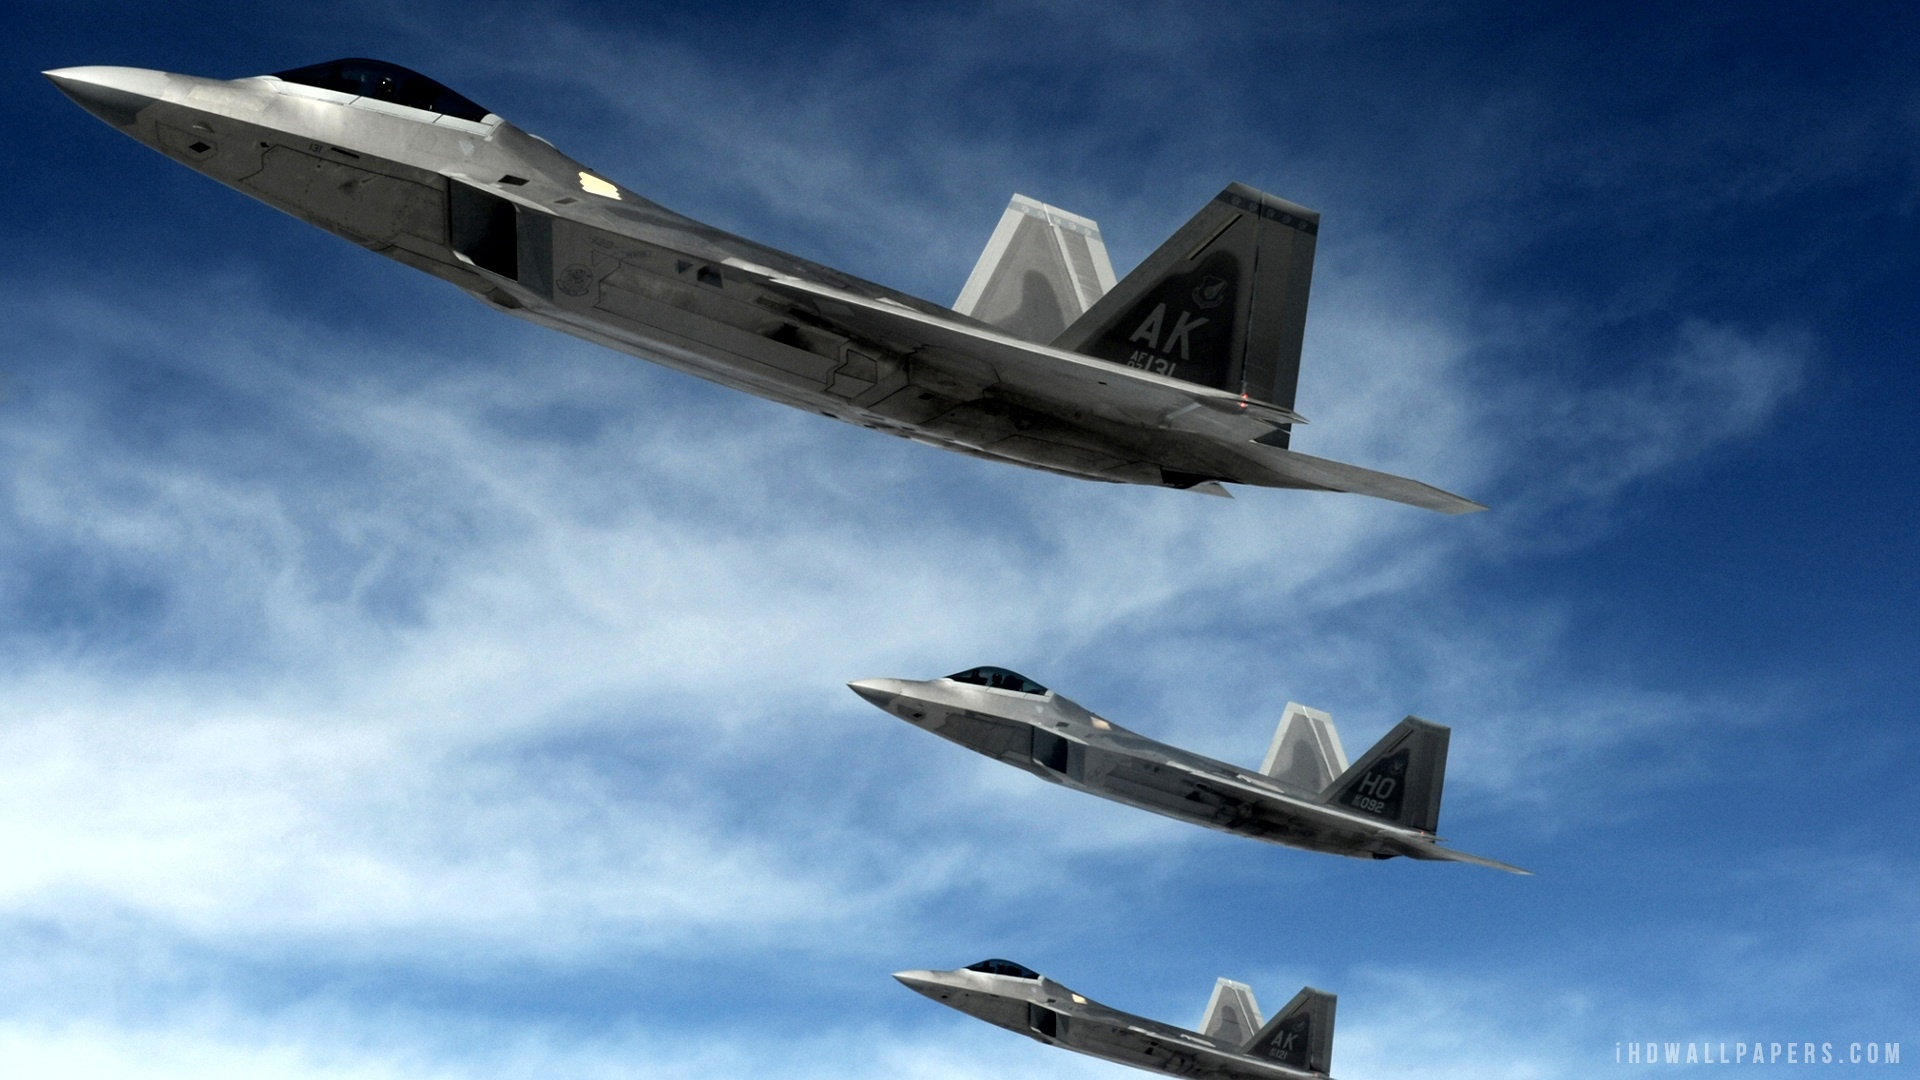 22 Raptor Supersonic Stealth Fighters HD Wallpaper   iHD Wallpapers 1920x1080